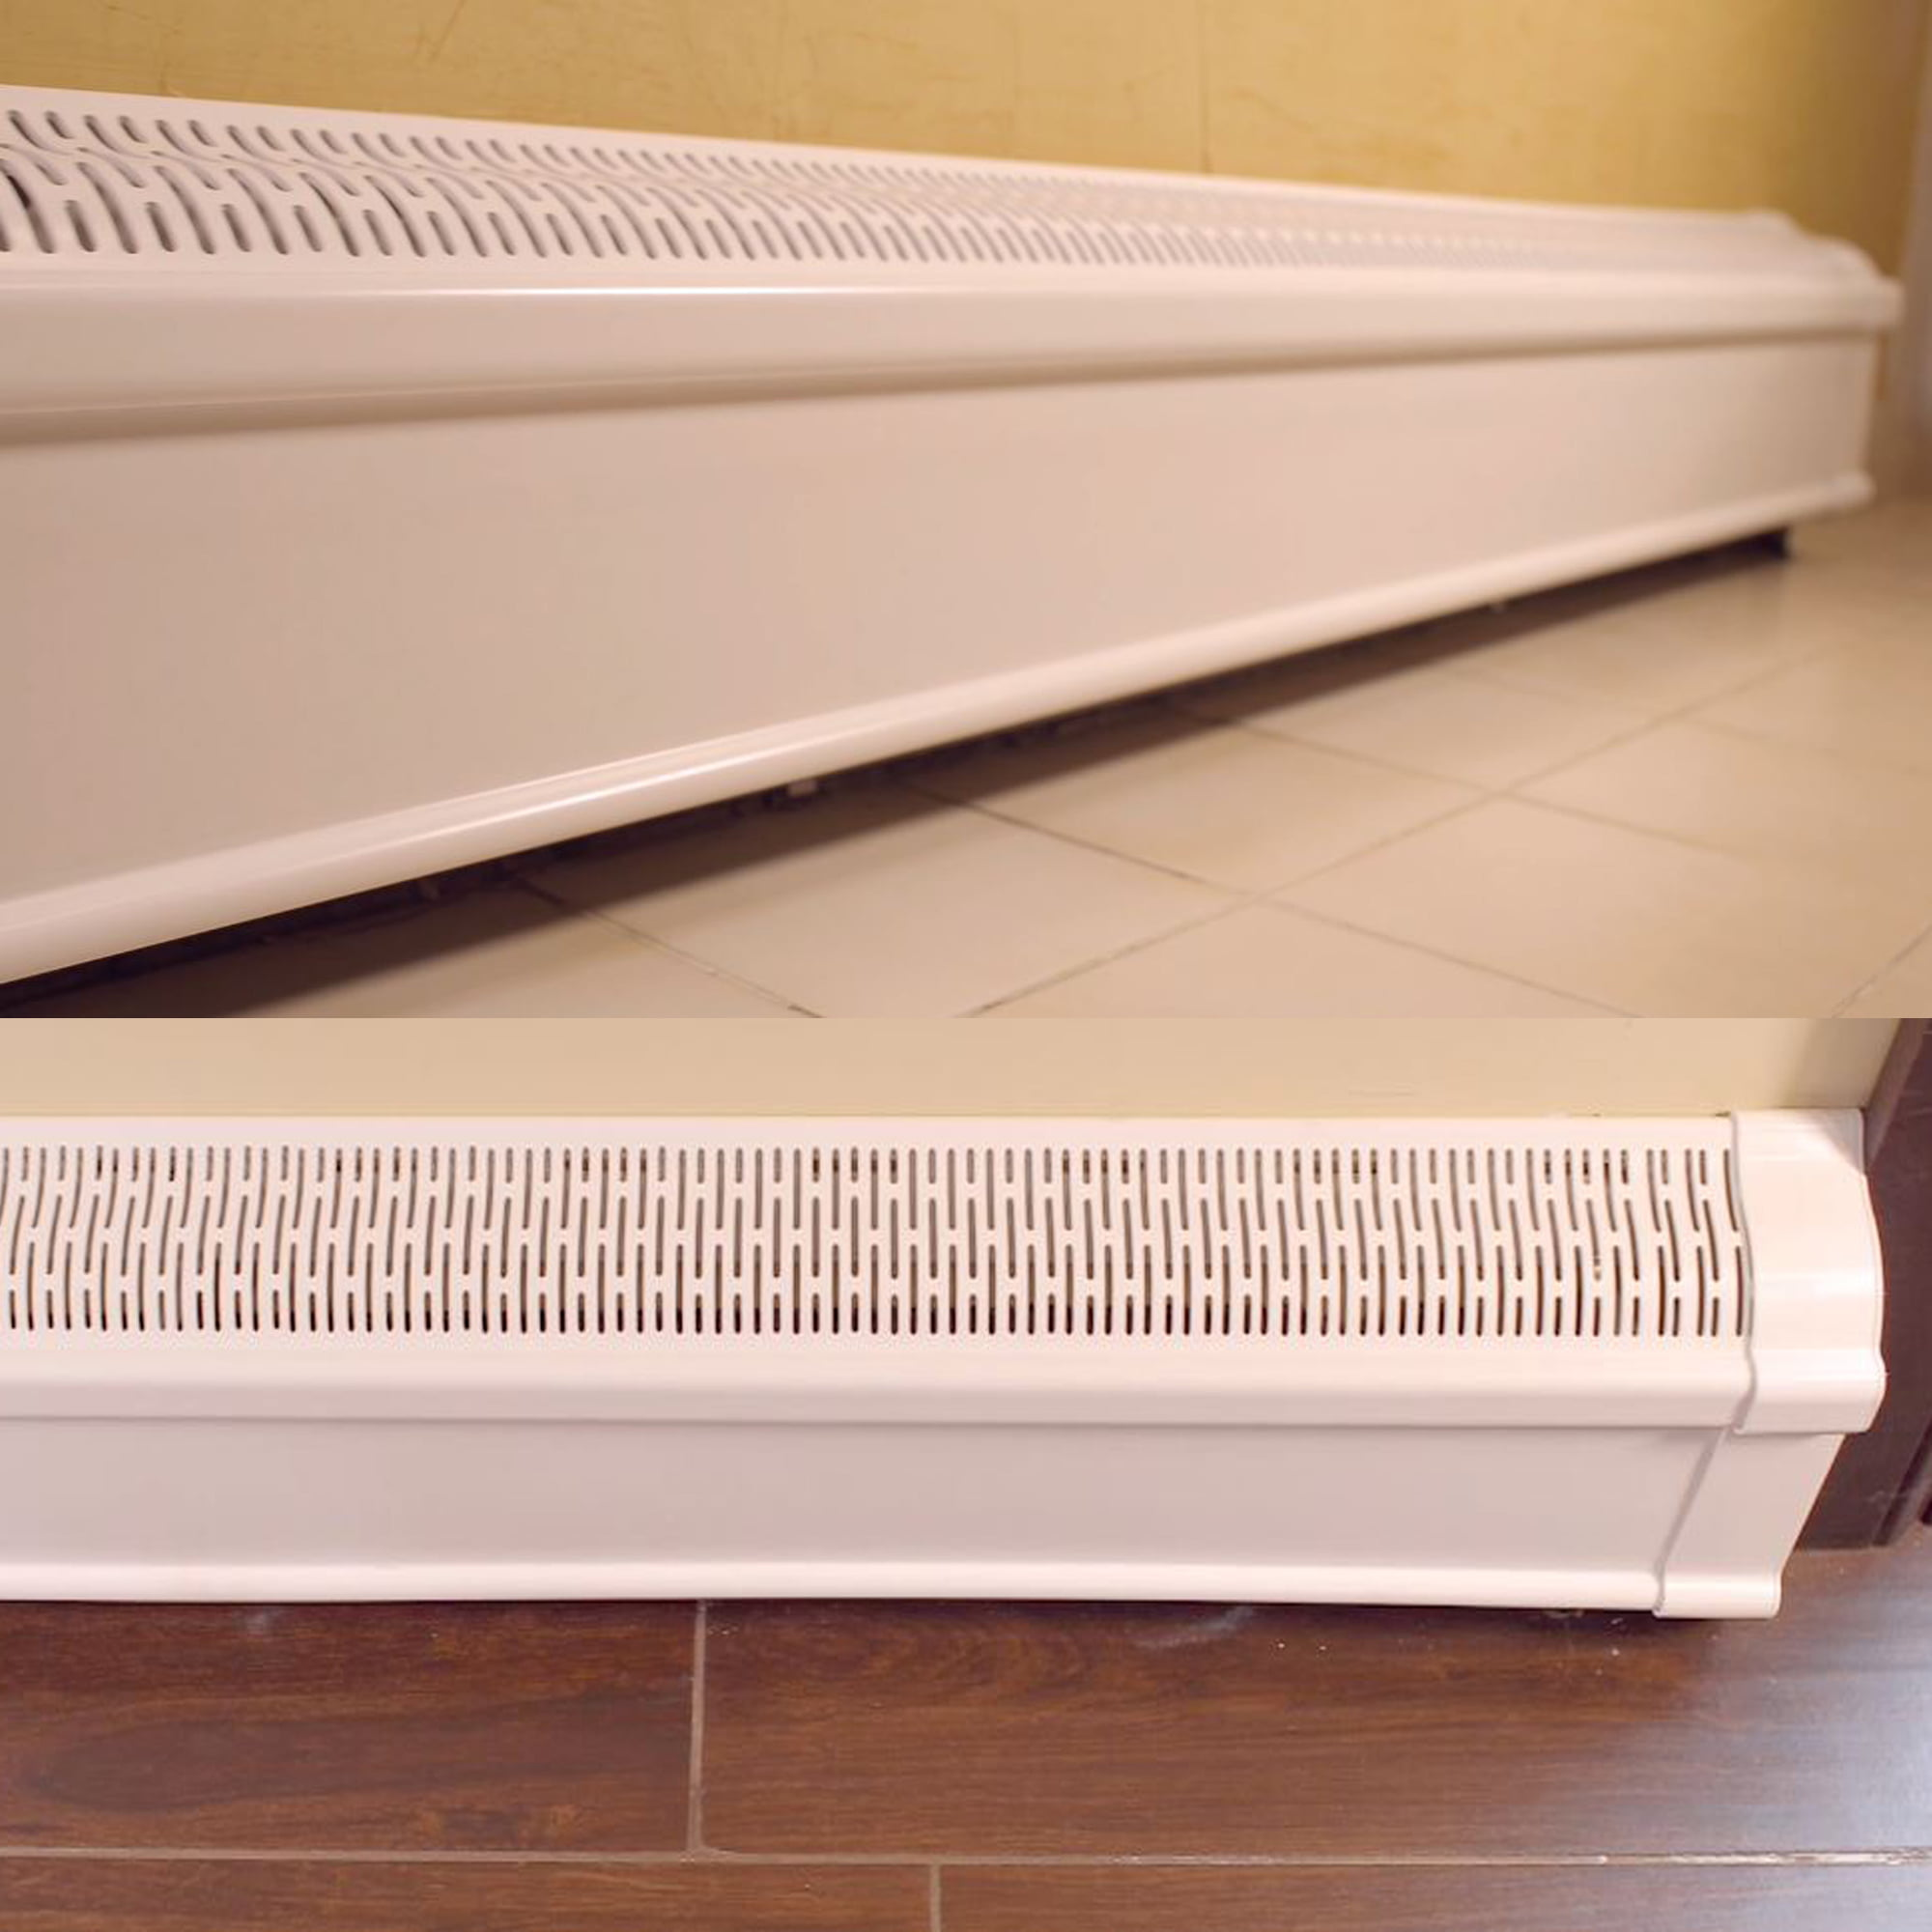 Baseboard Heat Covers Complete Set 2 Feet White Includes Right And Left End Caps Hot Water Hydronic Heater Baseboard Cover Enclosure Replacement Kit For Home Rust Proof Plastic Walmart Com Walmart Com